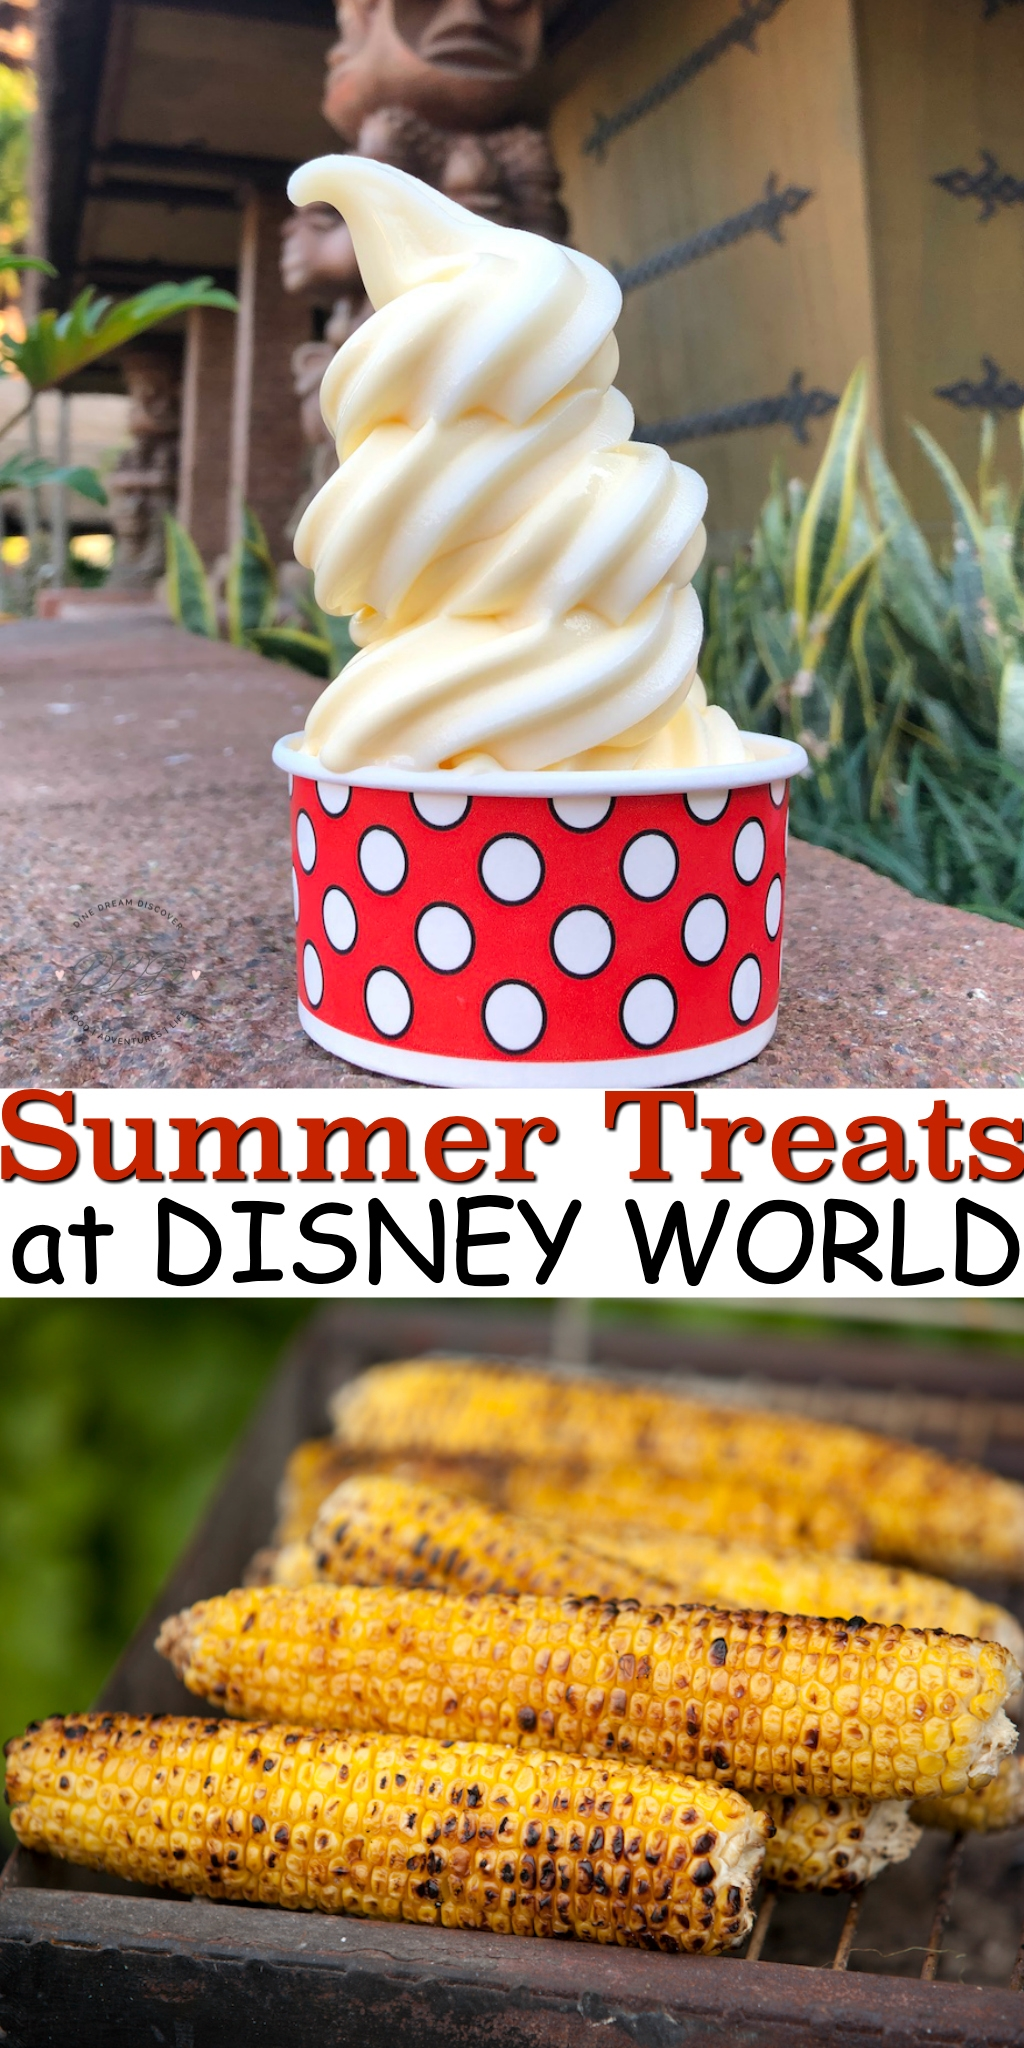 Whether you're looking for a refreshing cool treat or a savory snack, you won't be disappointed with our current favorite summer treats at Disney!